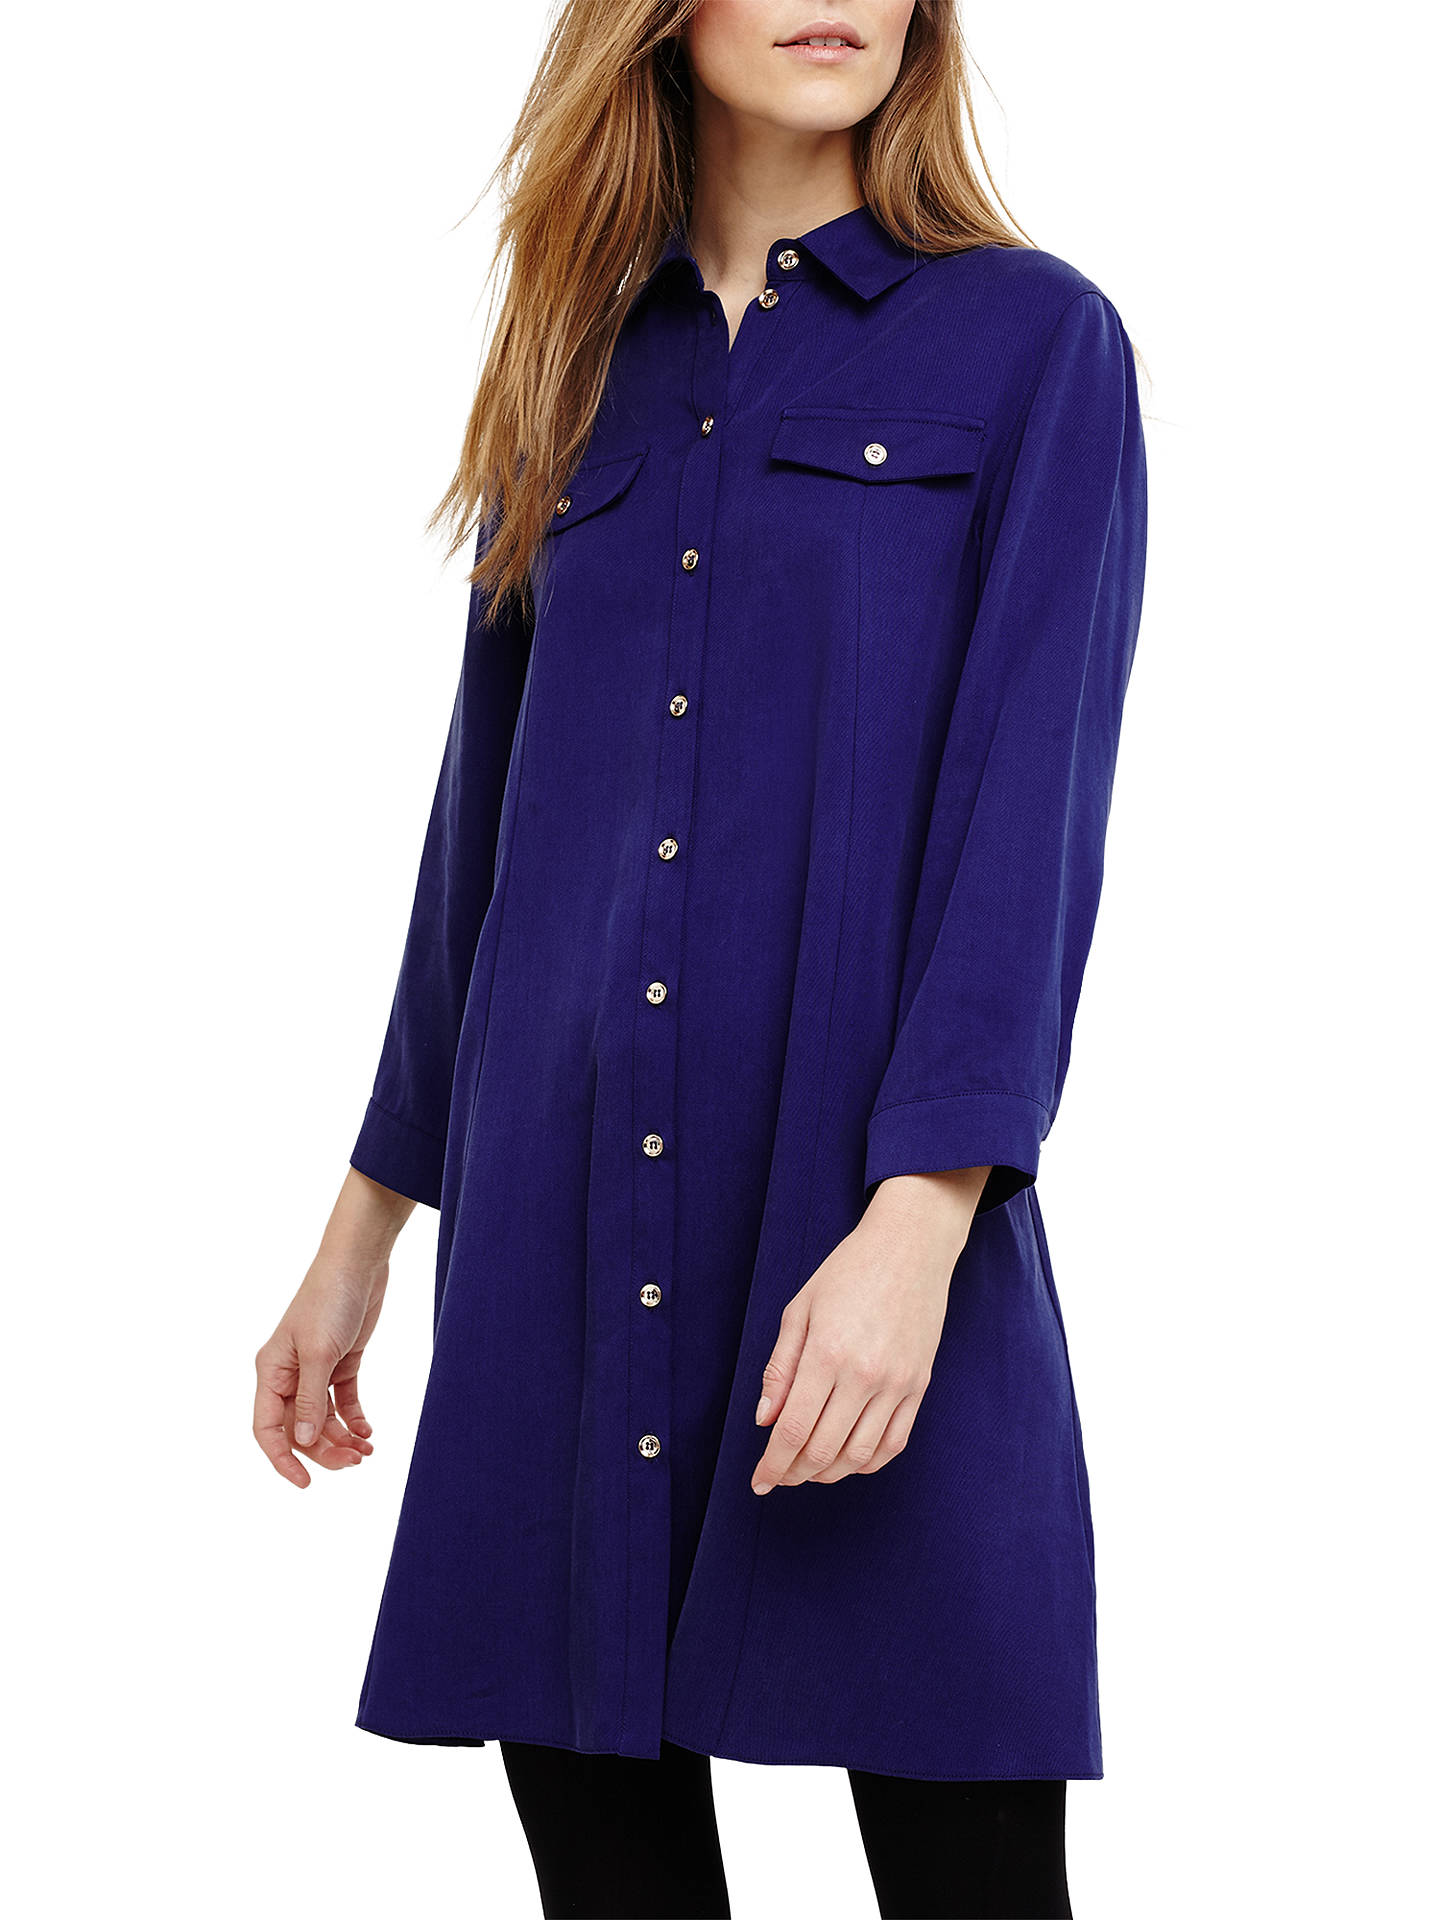 df0f6479 Buy Phase Eight Montana Shirt Dress, Sapphire Blue, 12 Online at  johnlewis.com ...